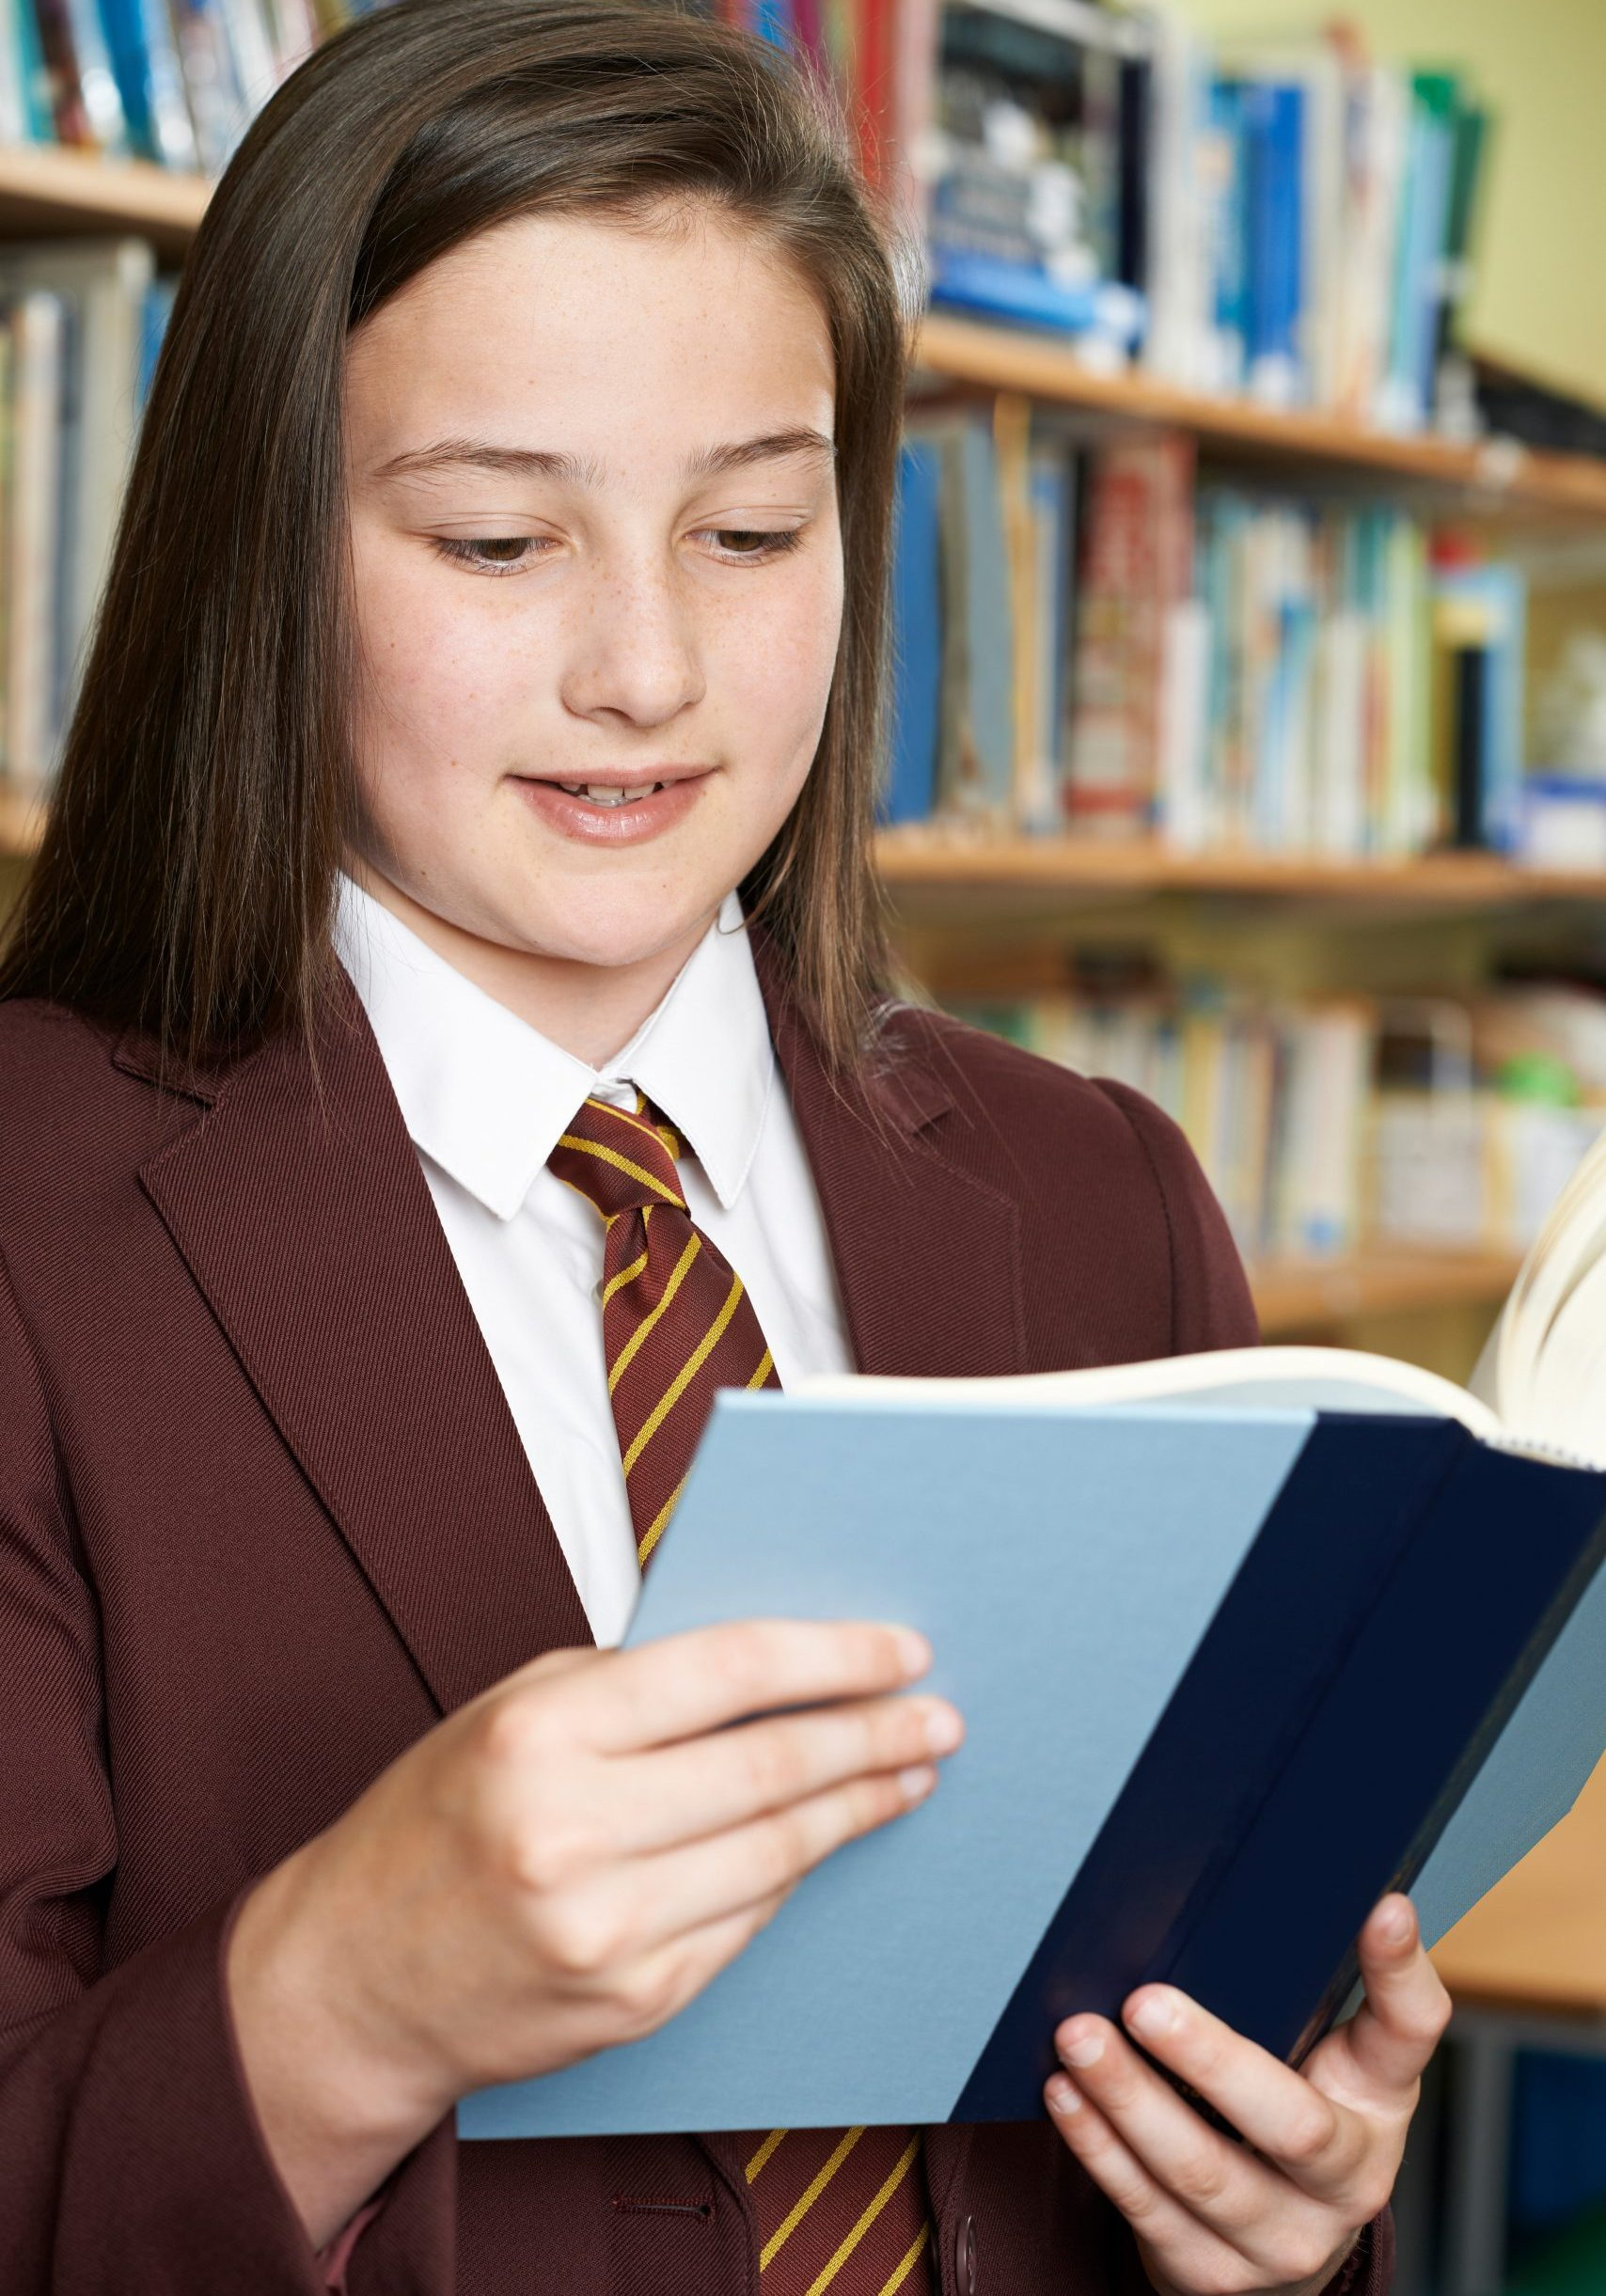 Girl Wearing School Uniform Reading Book In Library